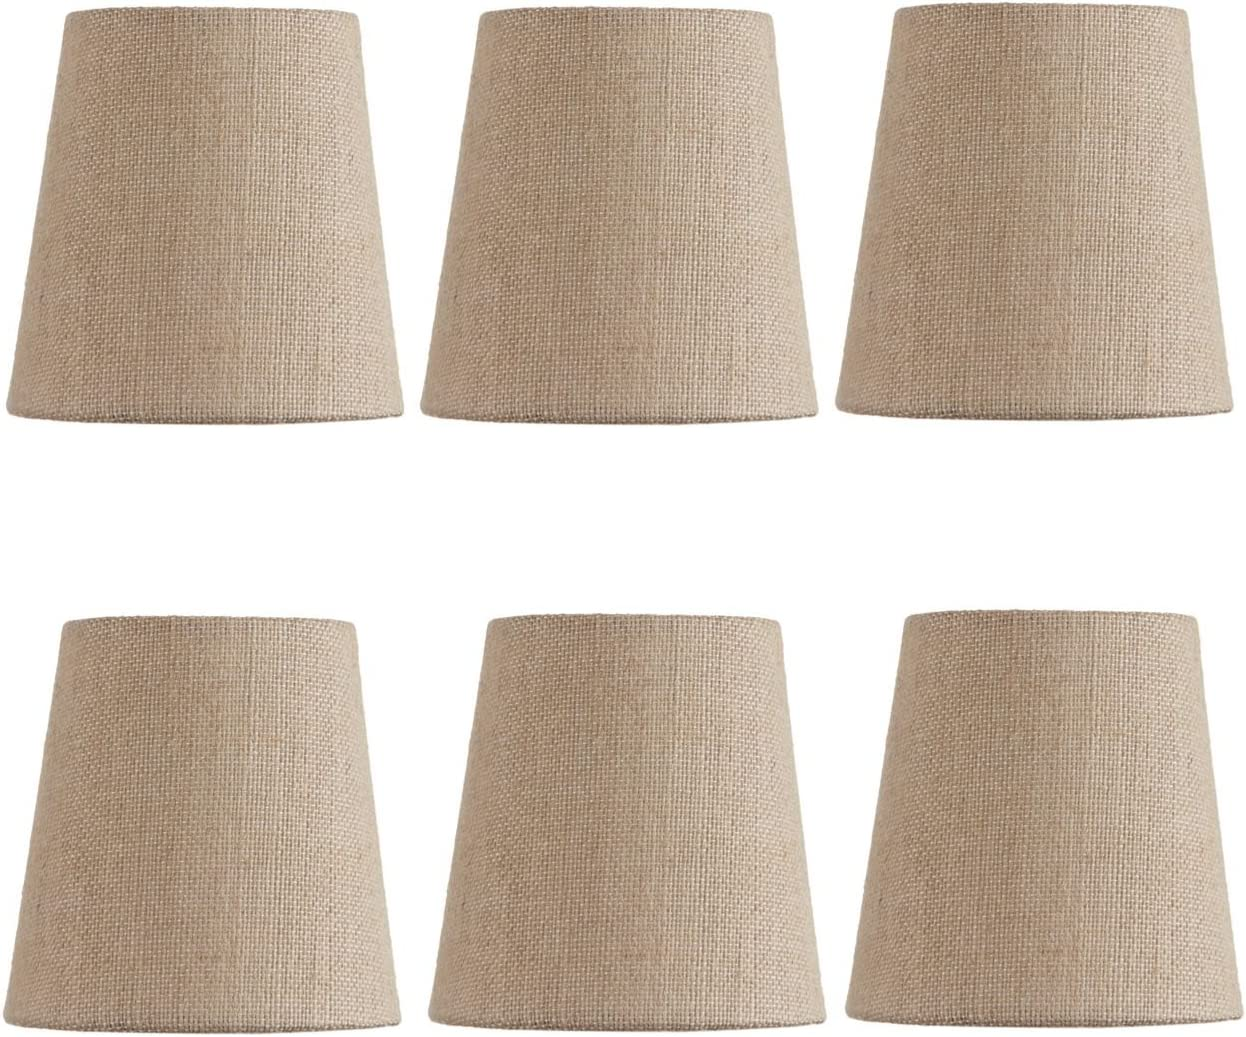 Upgradelights Beige Linen 4 Inch Mini Clip On Chandelier Lamp Shade Set of 6 2.5x4x4